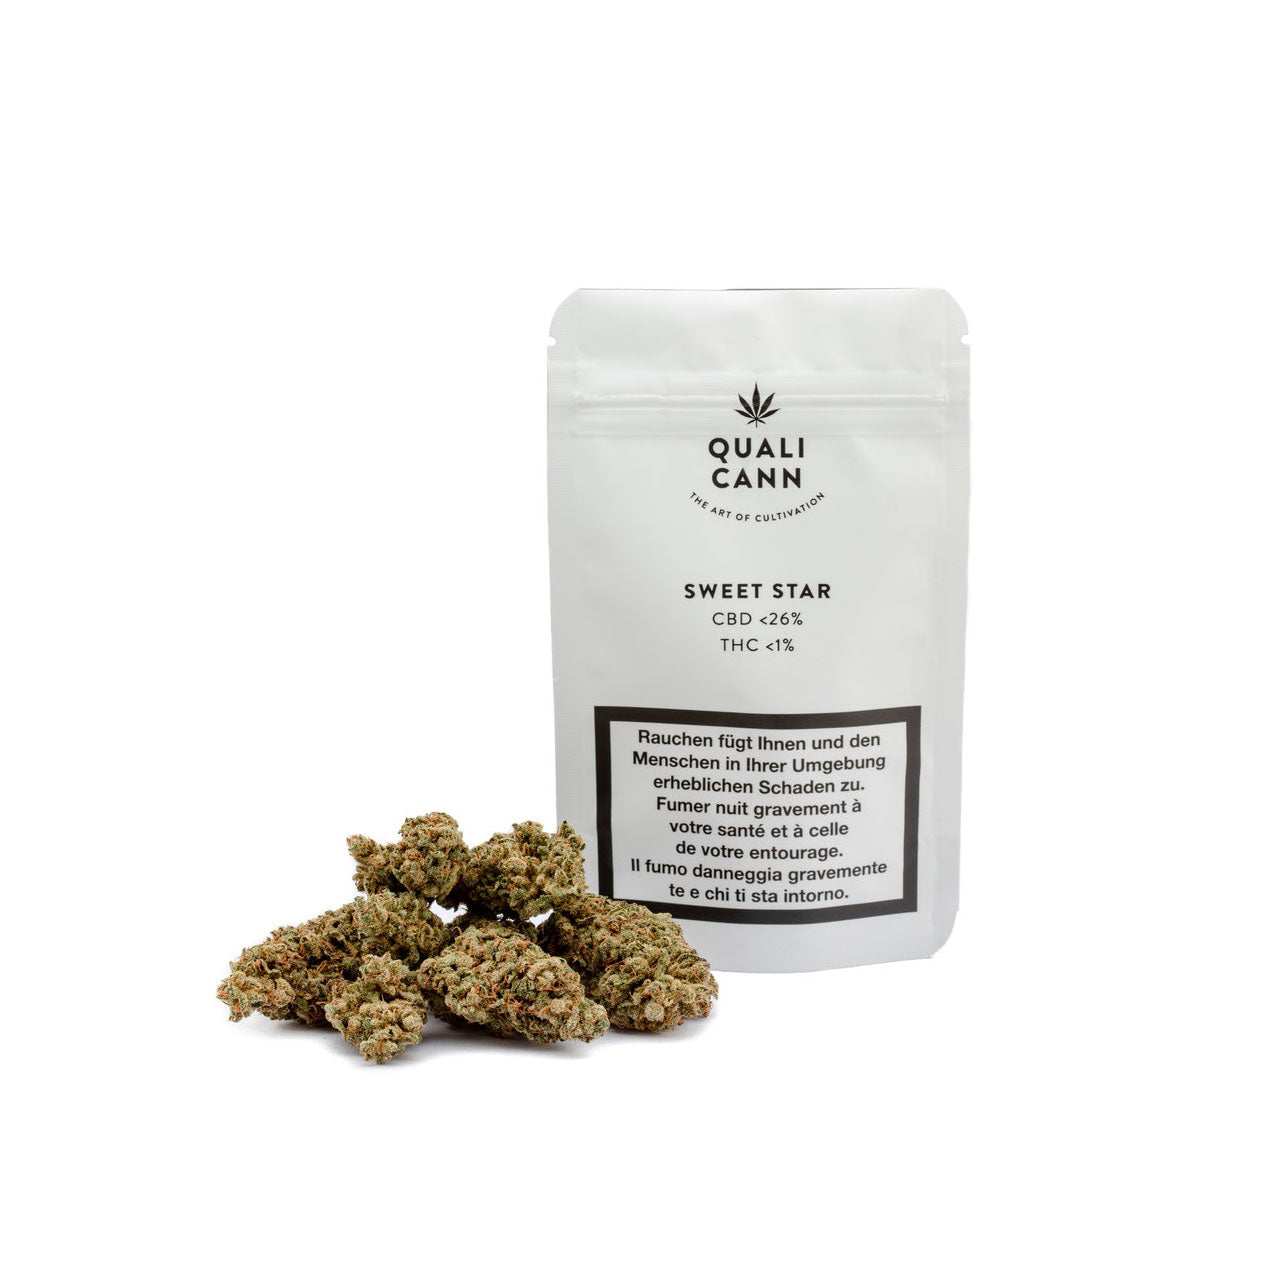 Sweet Star | Qualicann | CBD Cannabis | uWeed | Swiss CBD Shop